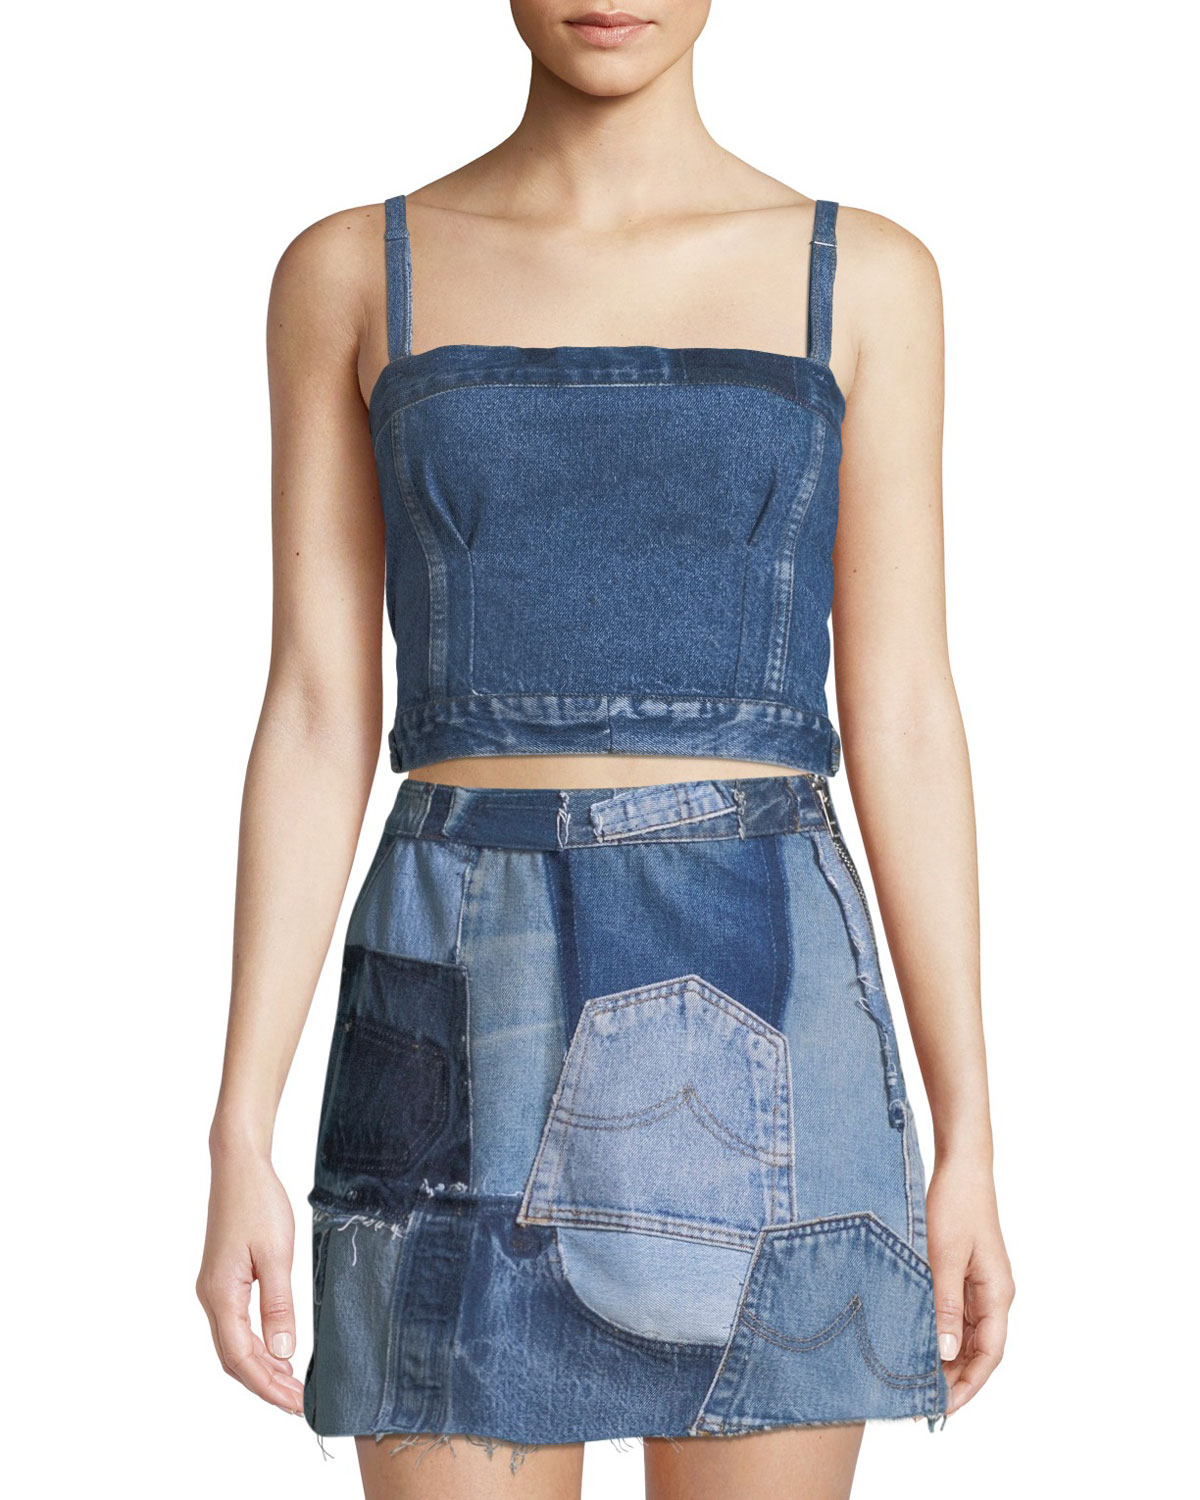 9c2adc2651a3ef RE DONE Deconstructed Denim Corset Crop Top